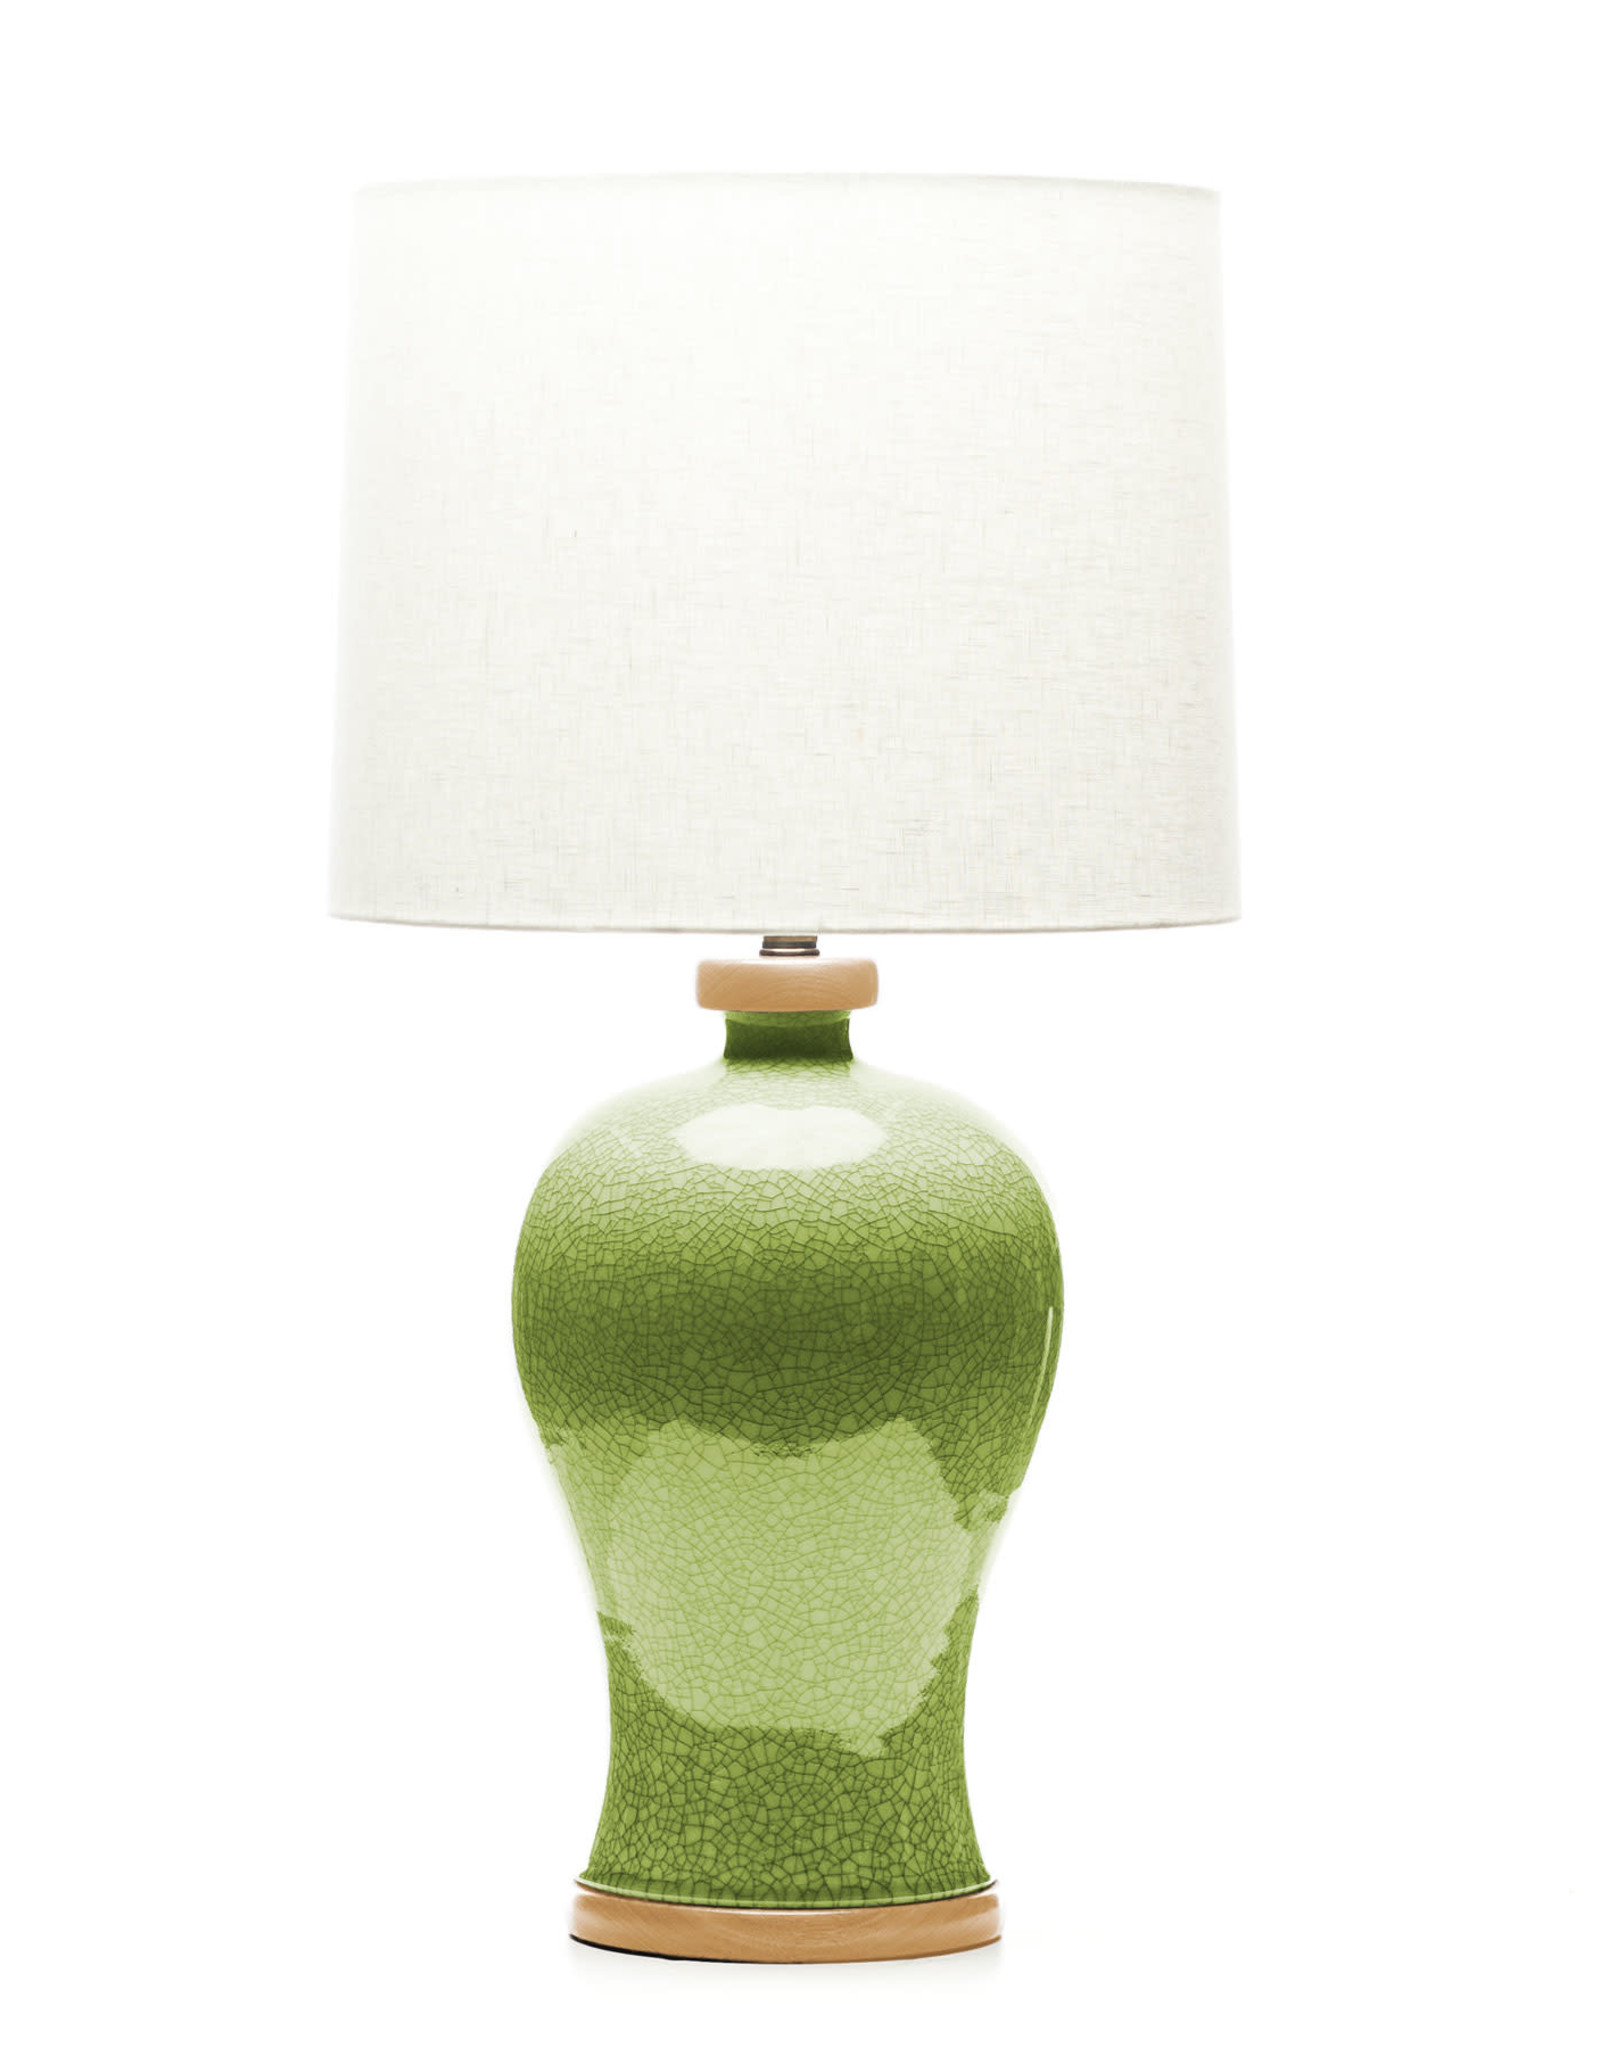 Lawrence & Scott Dashiell Table Lamp in Celadon Crackle with Oak Base